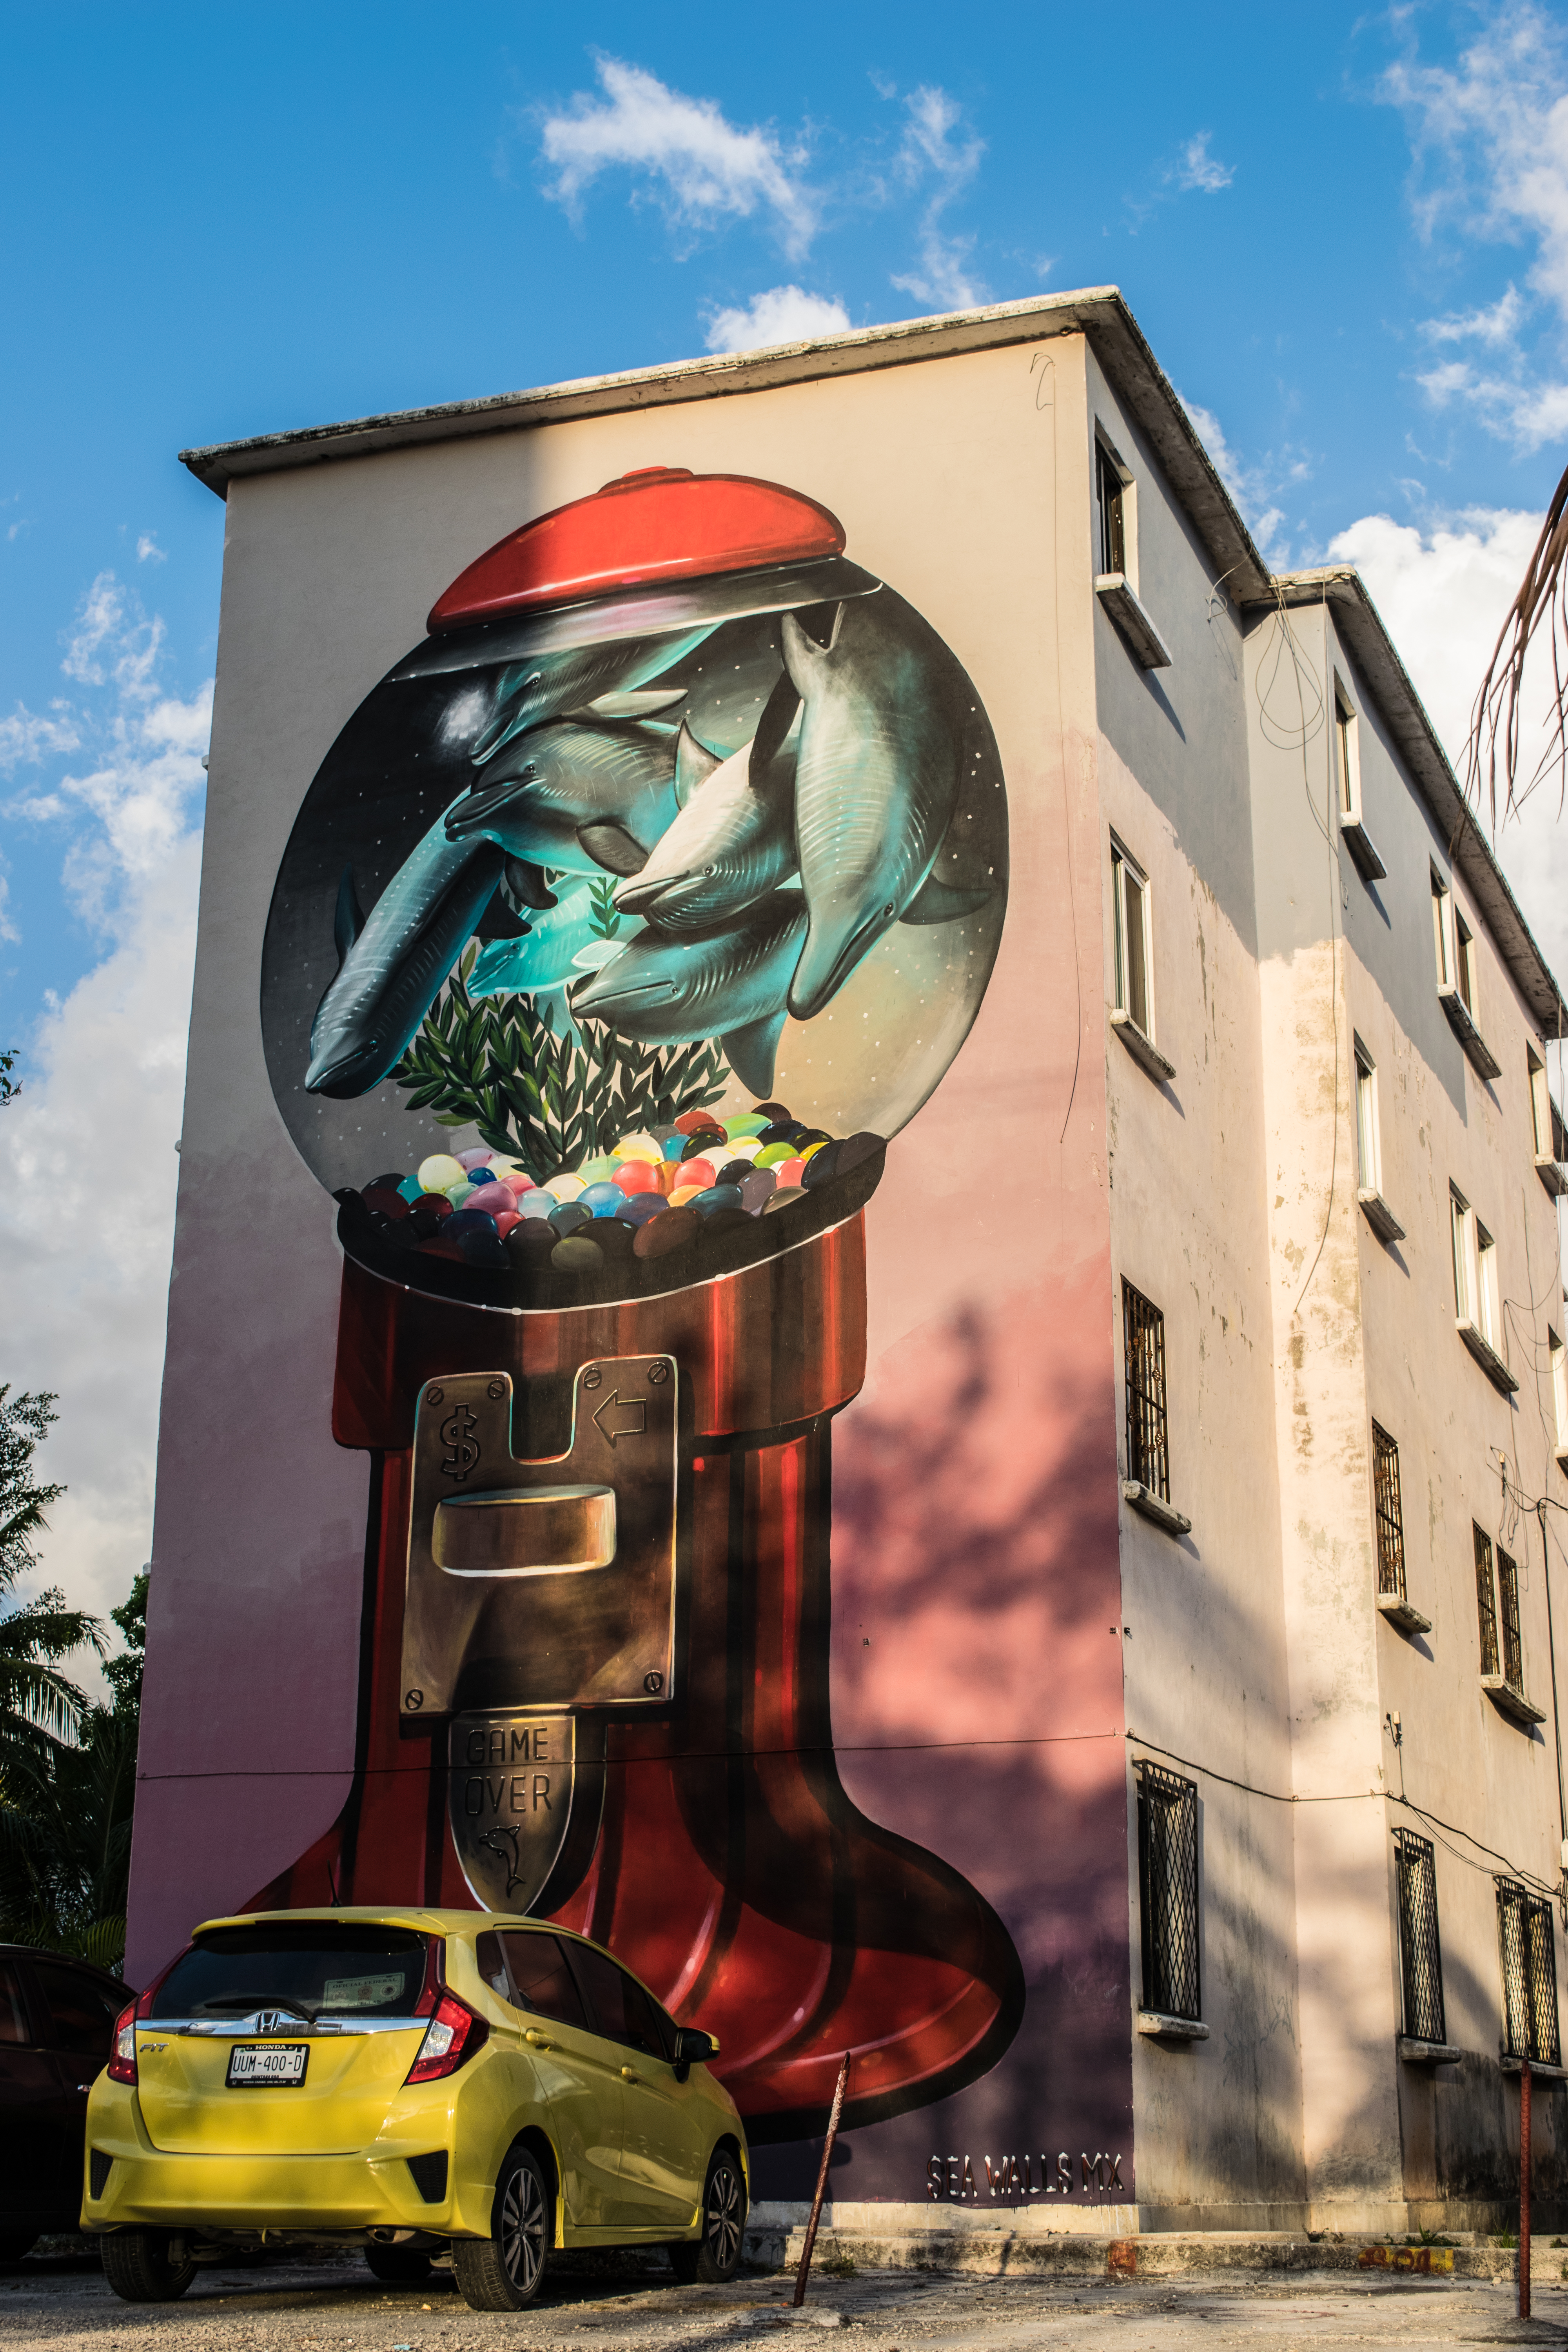 gumball machine mural in Cancun